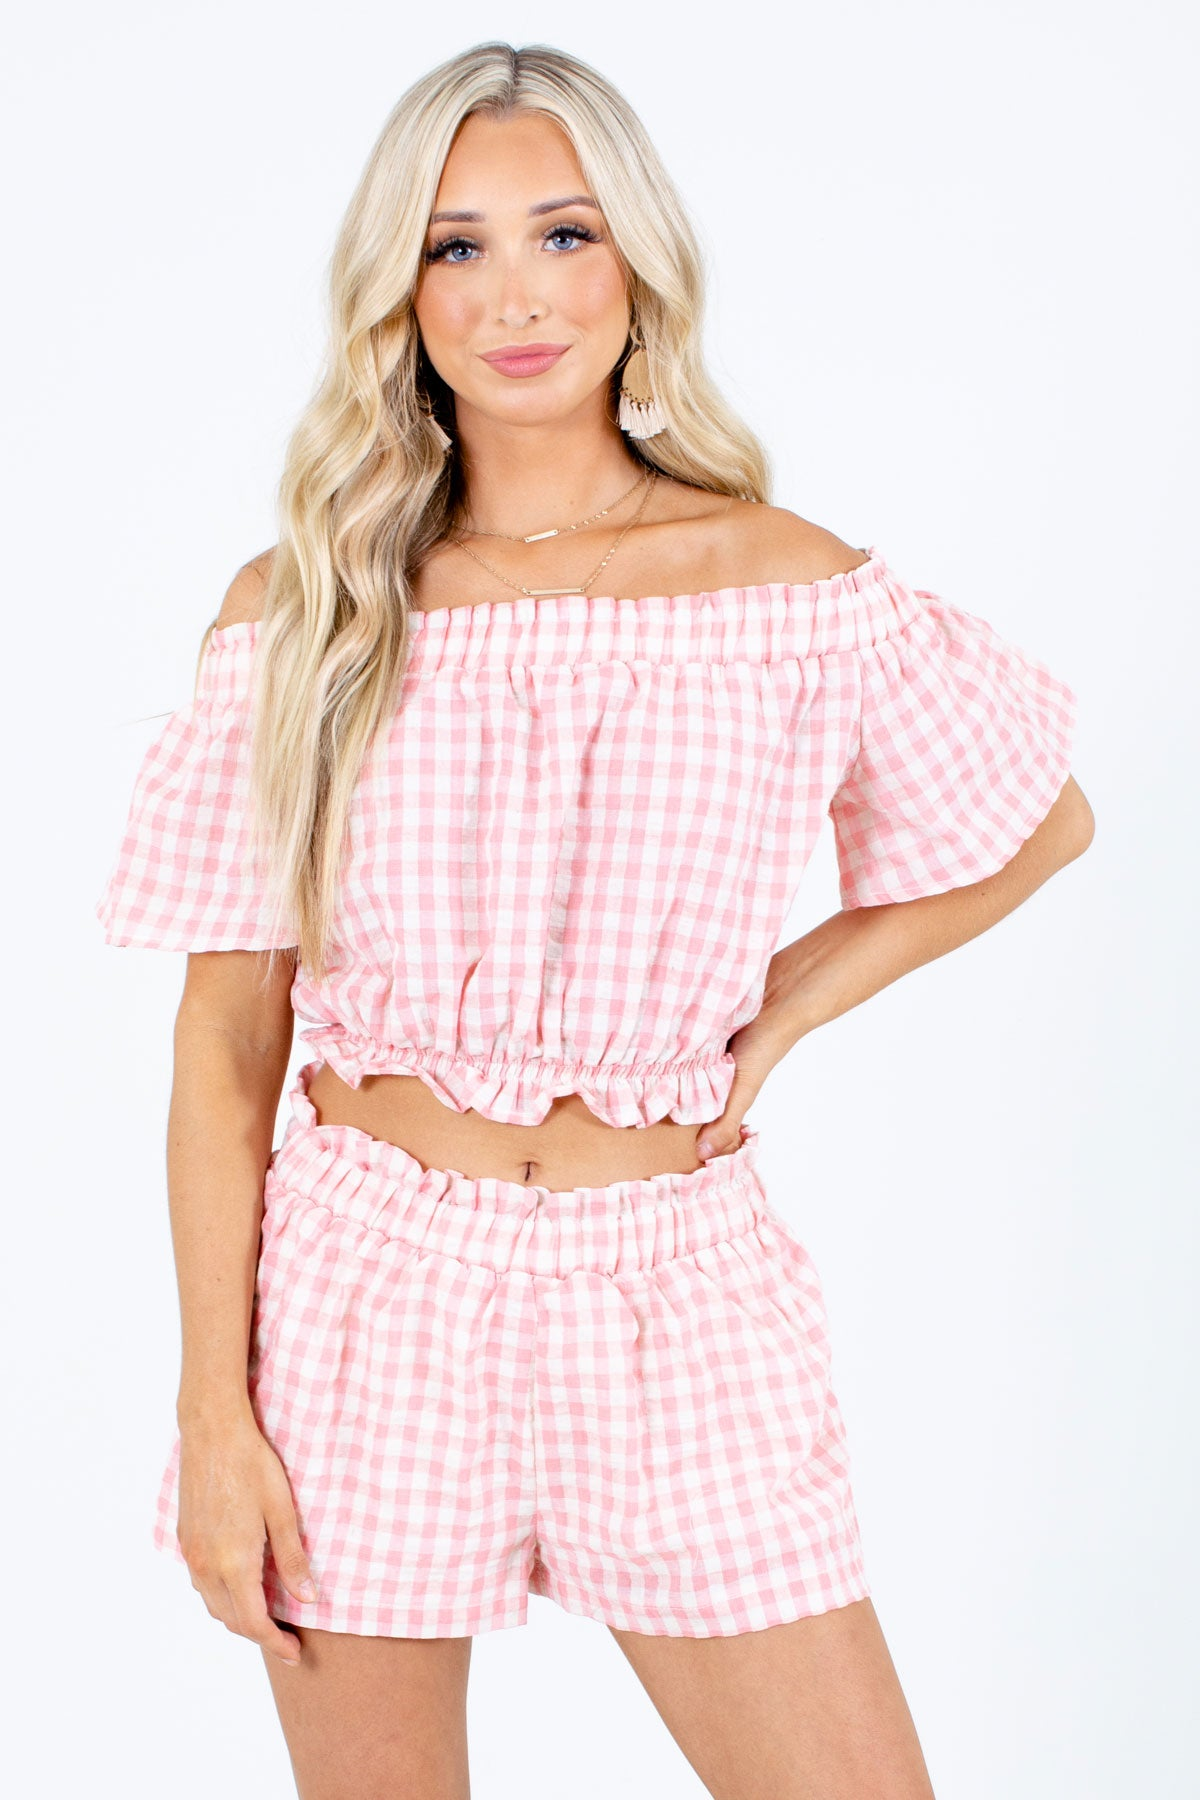 Pink and White Gingham Patterned Boutique Two-Piece Sets for Women